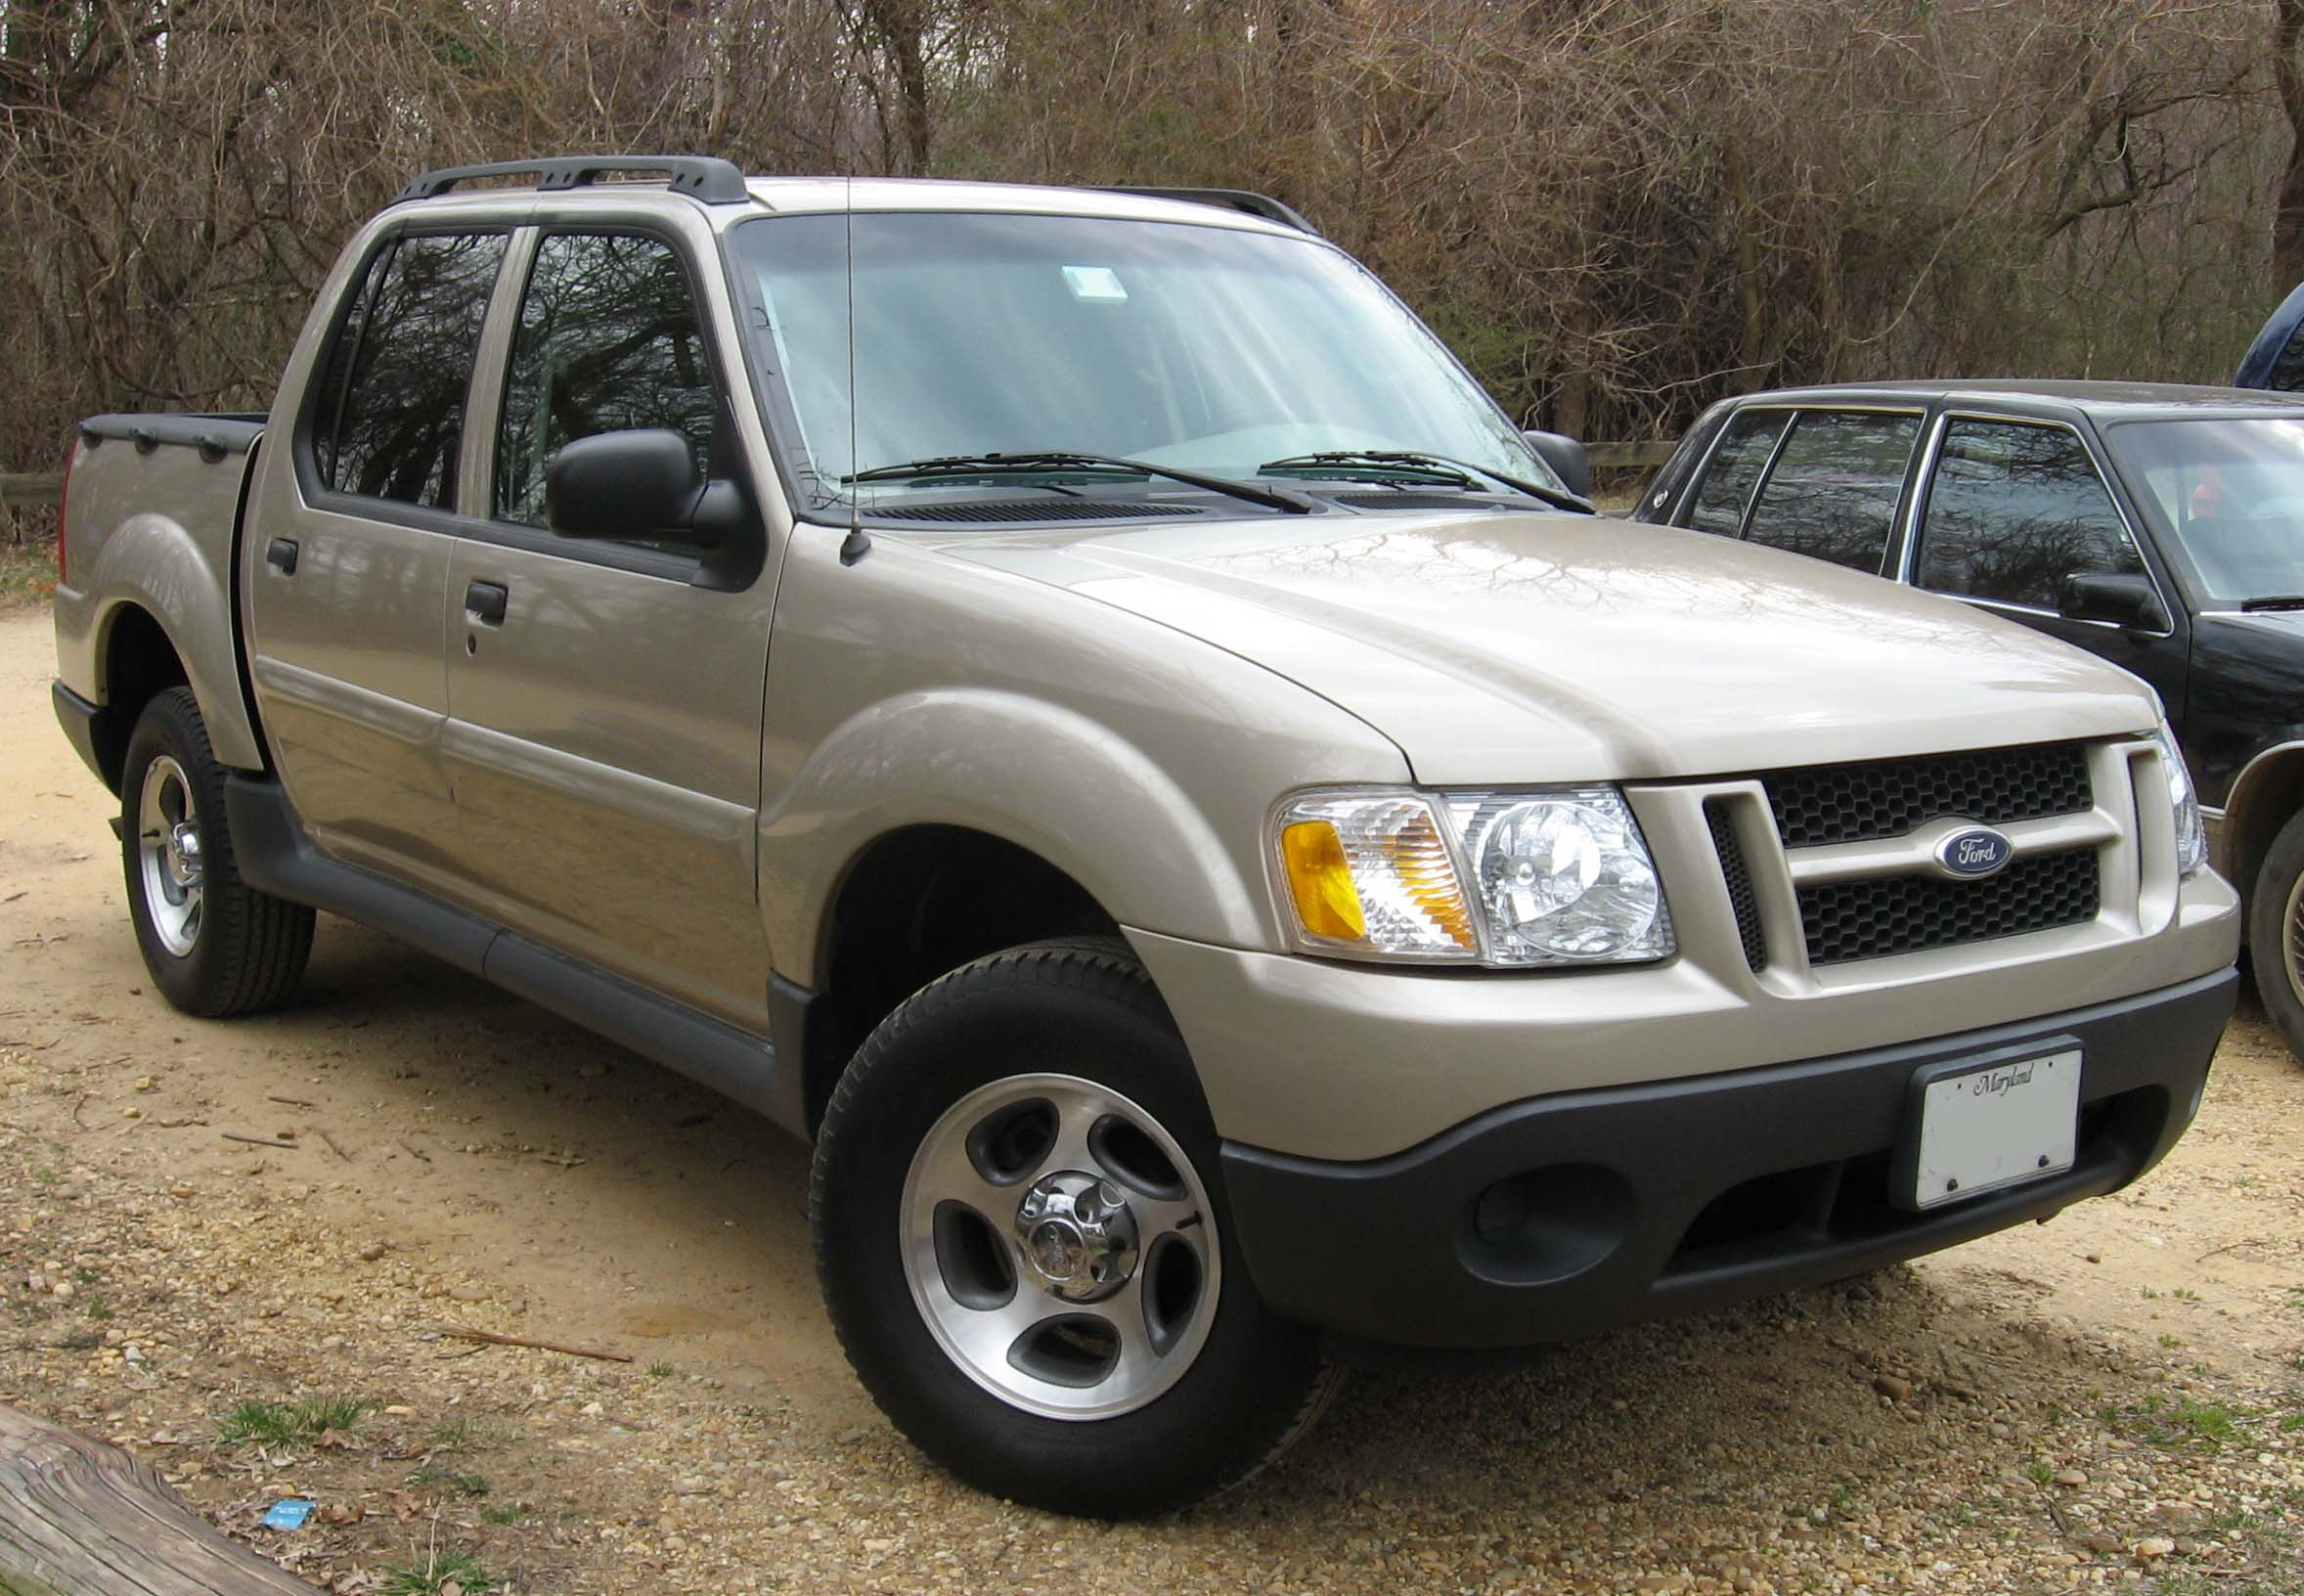 2002 Ford Explorer Sport Trac Photos Informations Articles 2004 4 0 Timing Chain 5